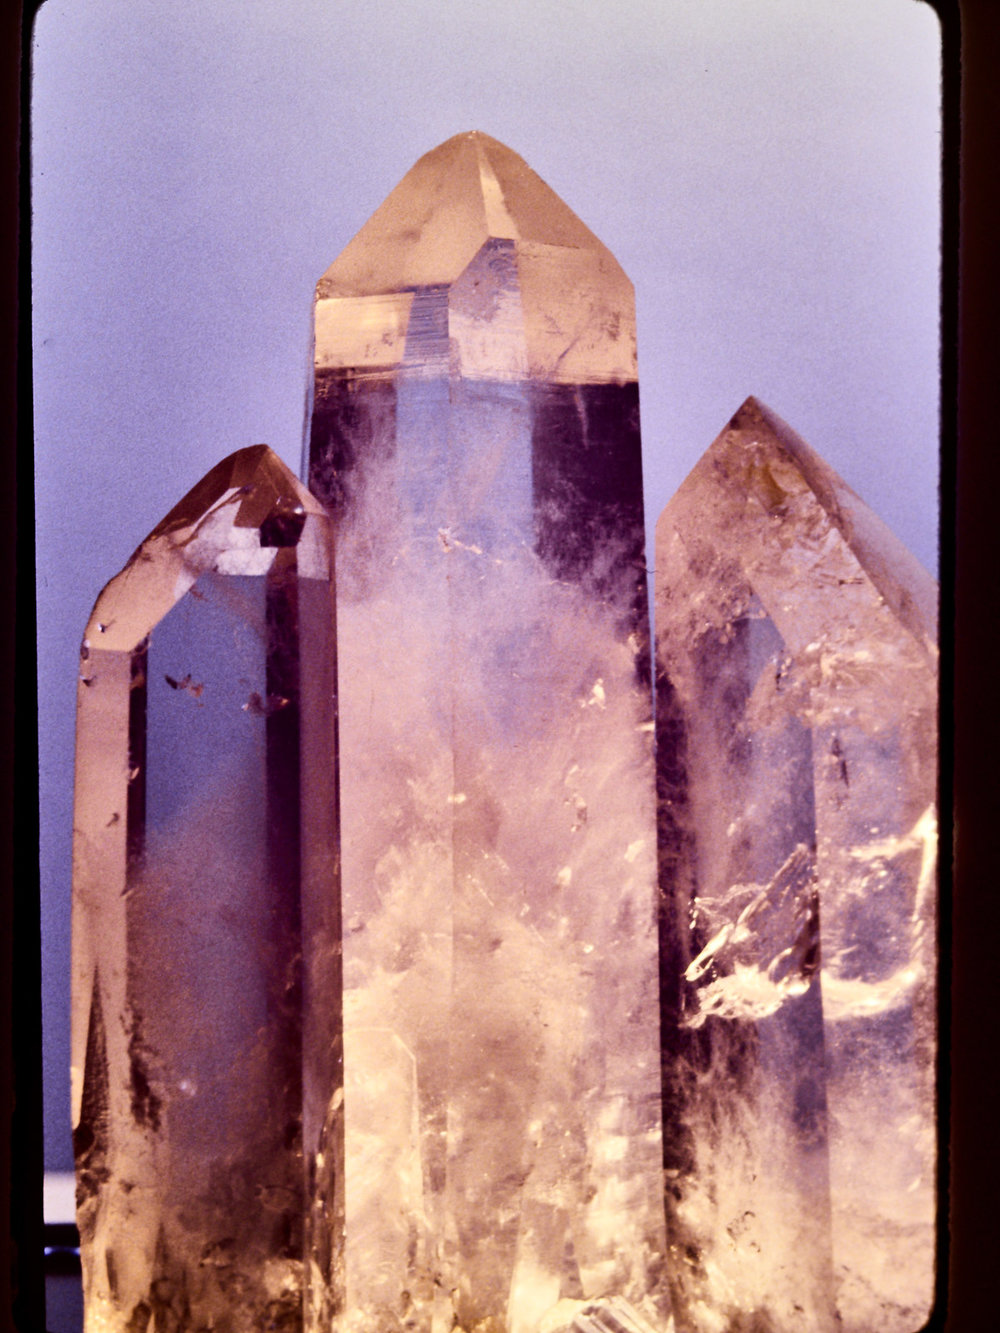 Quartz Crystals - Recorded on Ektachrome 100, 1985. Photo by Derrick Story.